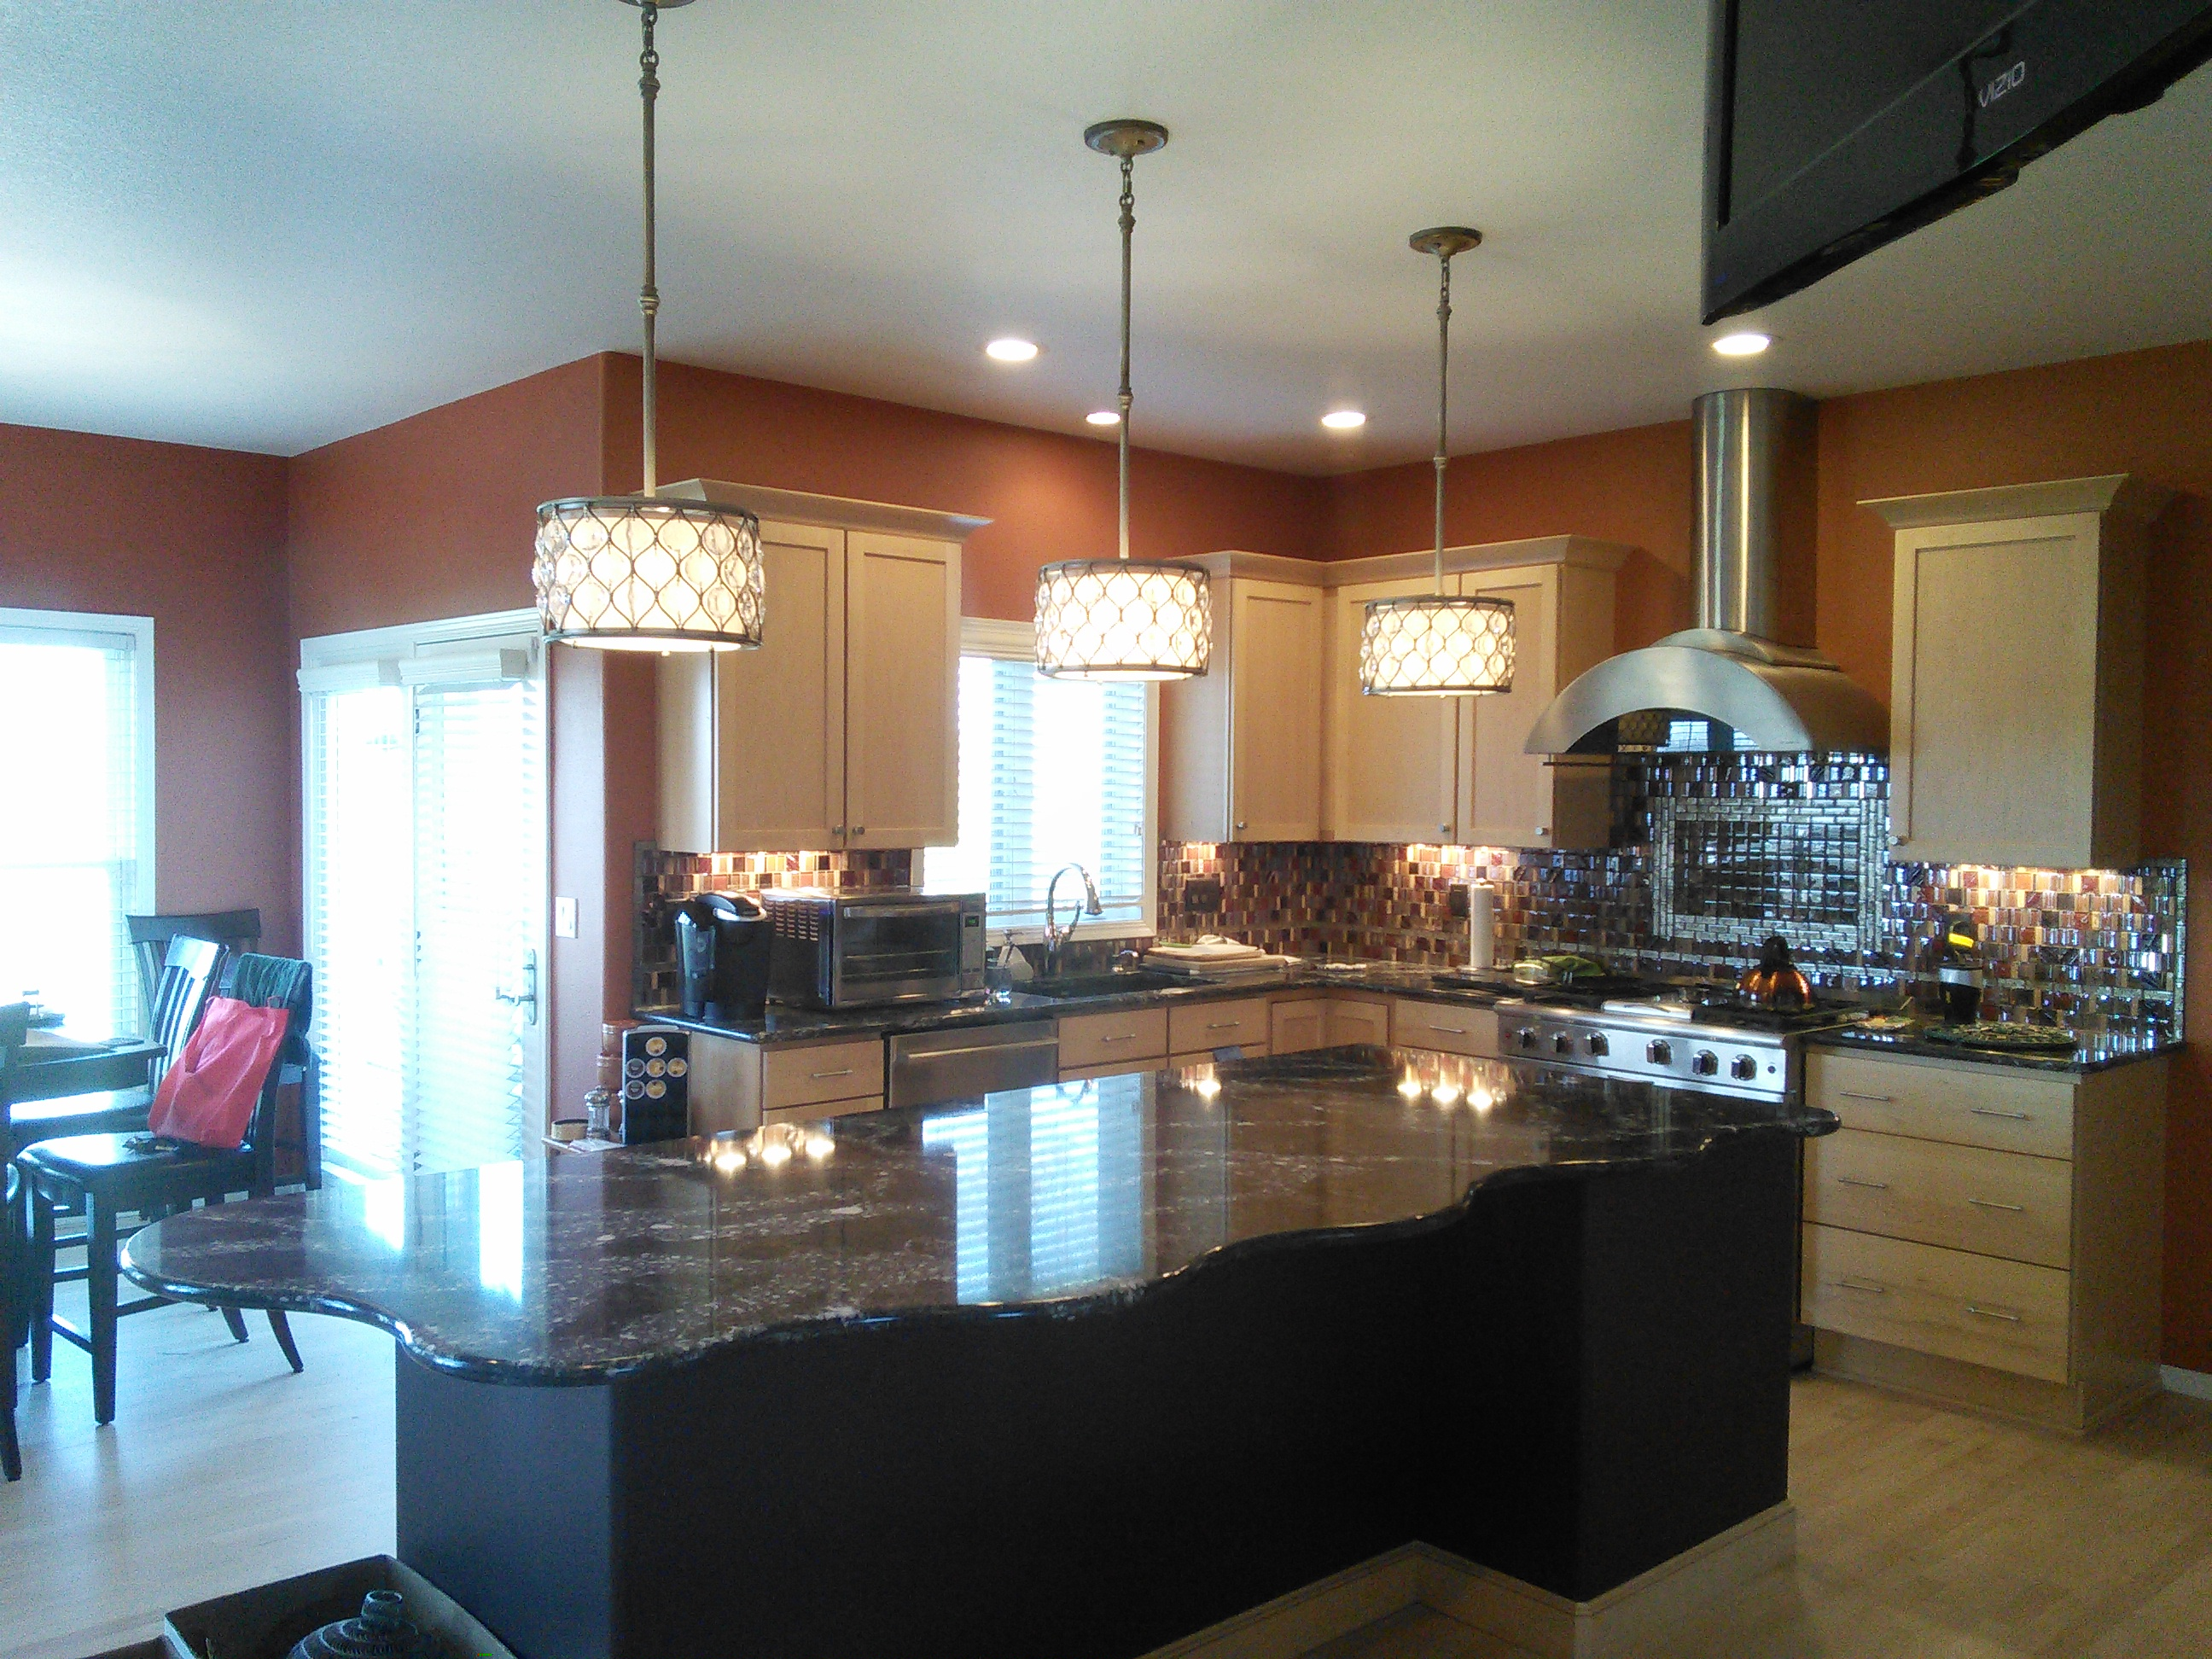 Completed kitchen remodeling project.